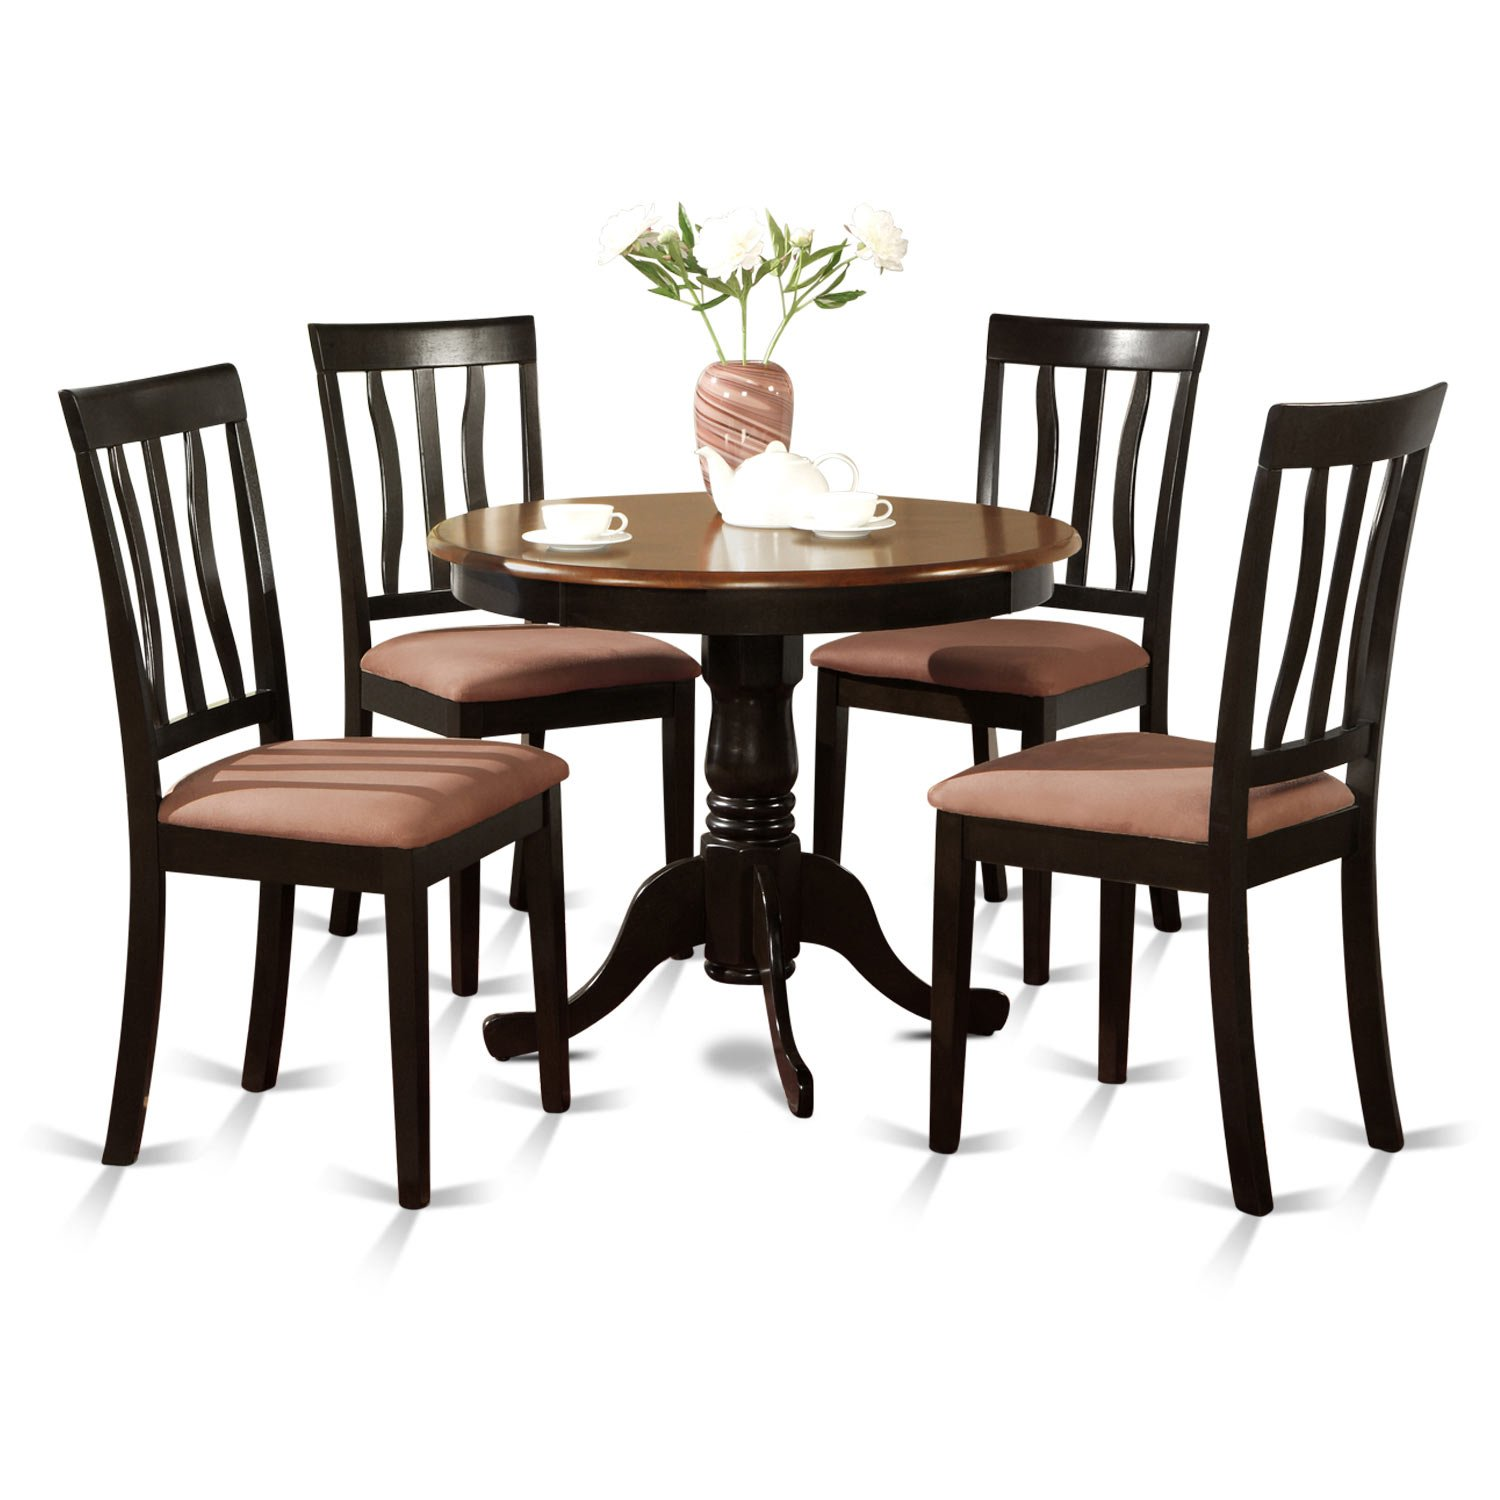 East West Furniture ANTI5-BLK-C 5-Piece Kitchen Table Set, Black/Cherry Finish, Cushion Seat,